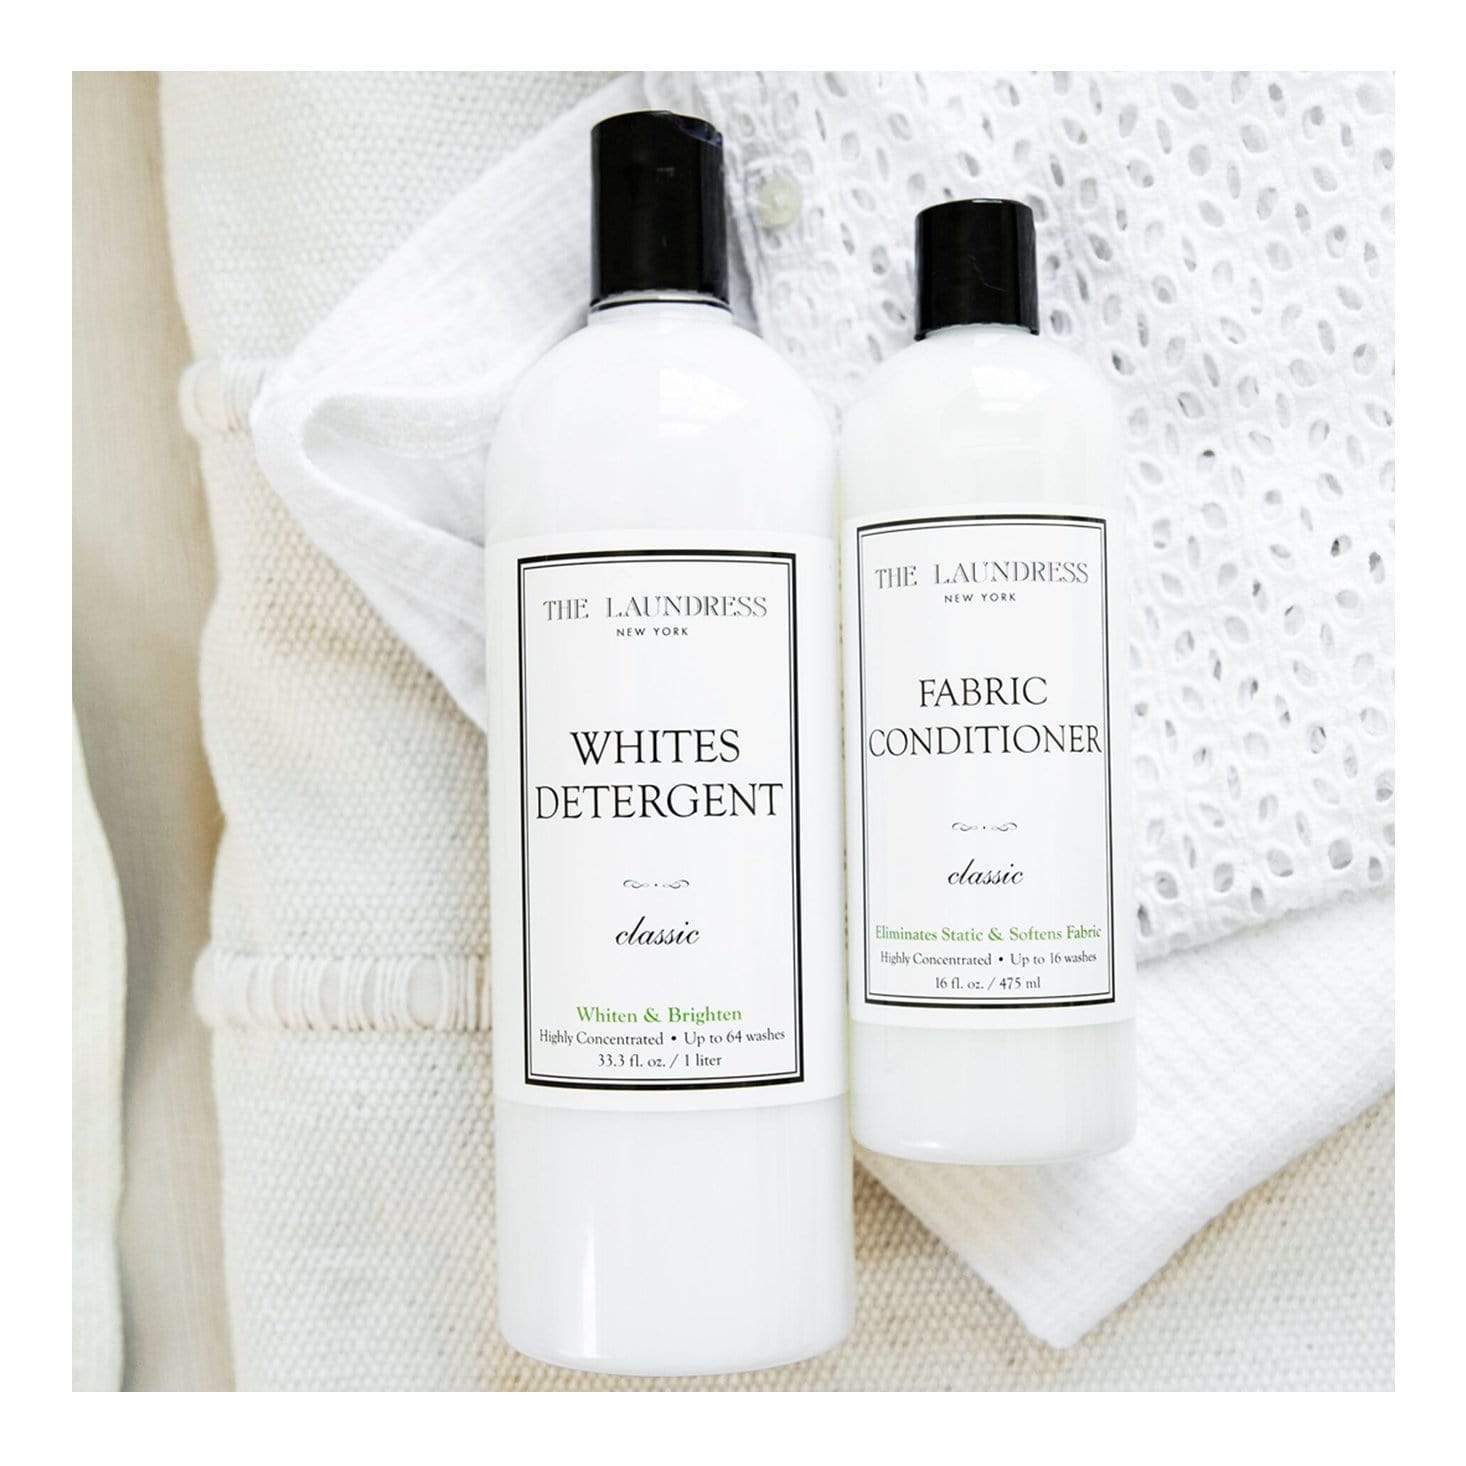 WHITES DETERGENT 1 LITRE - CLASSIC - THE LAUNDRESS